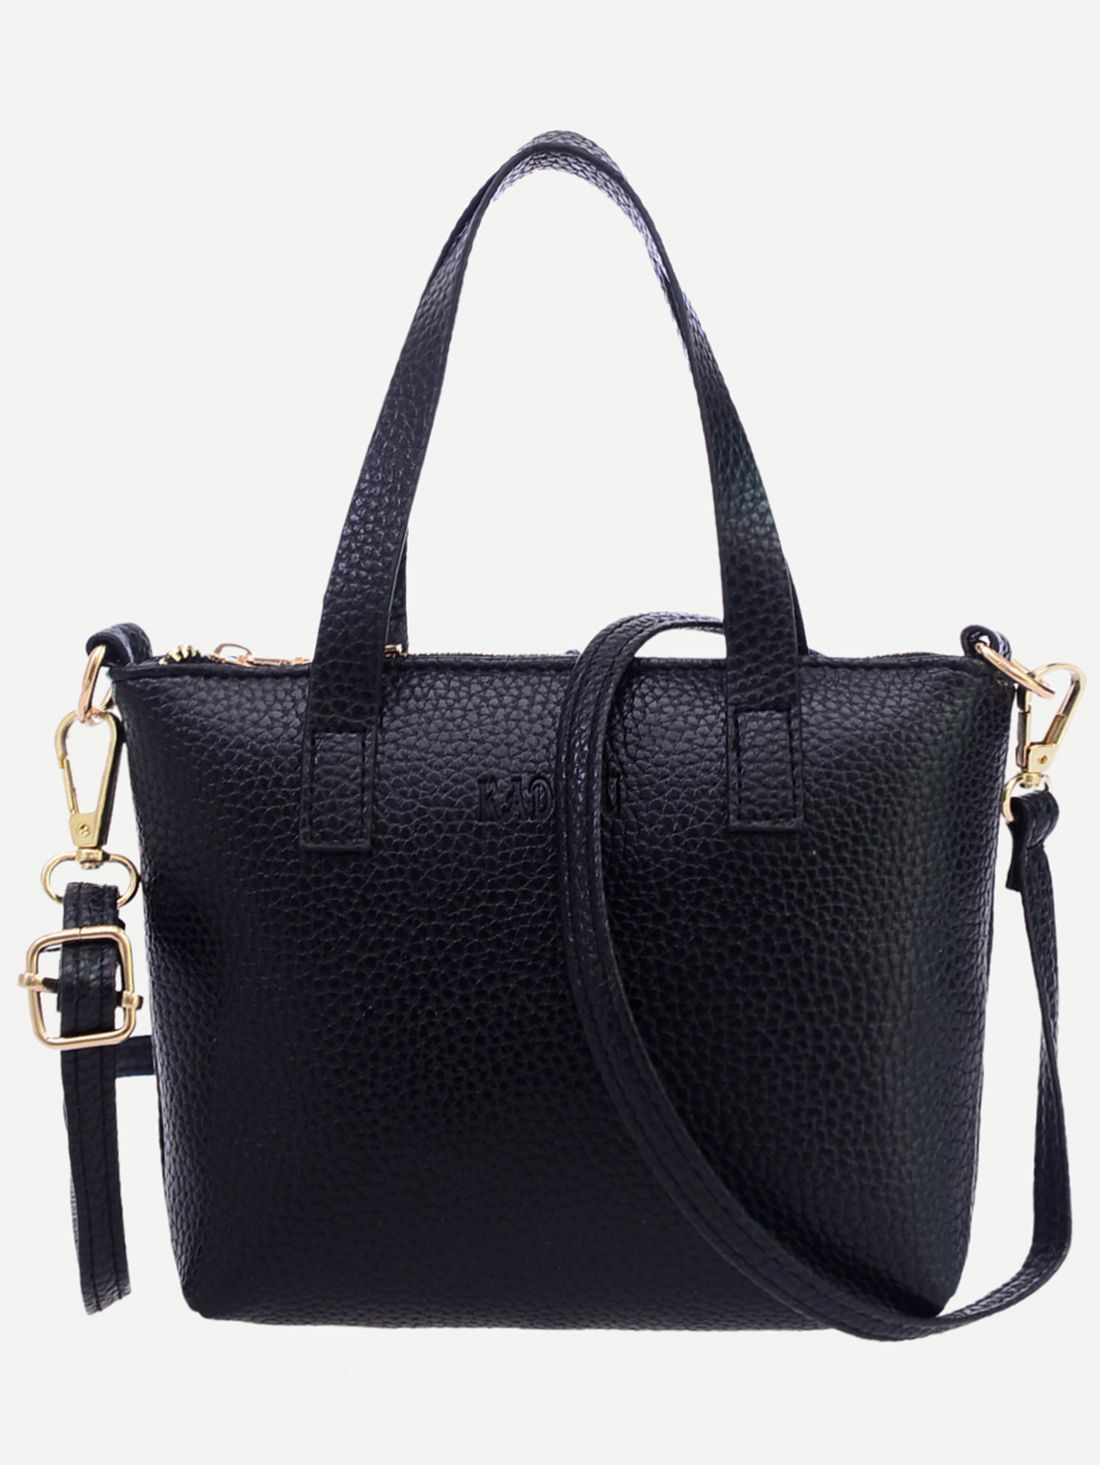 3f5776d4f4 ... ba205ba17650 Shop Black Pebbled Faux Leather Tote Bag With Strap  online. SheIn .